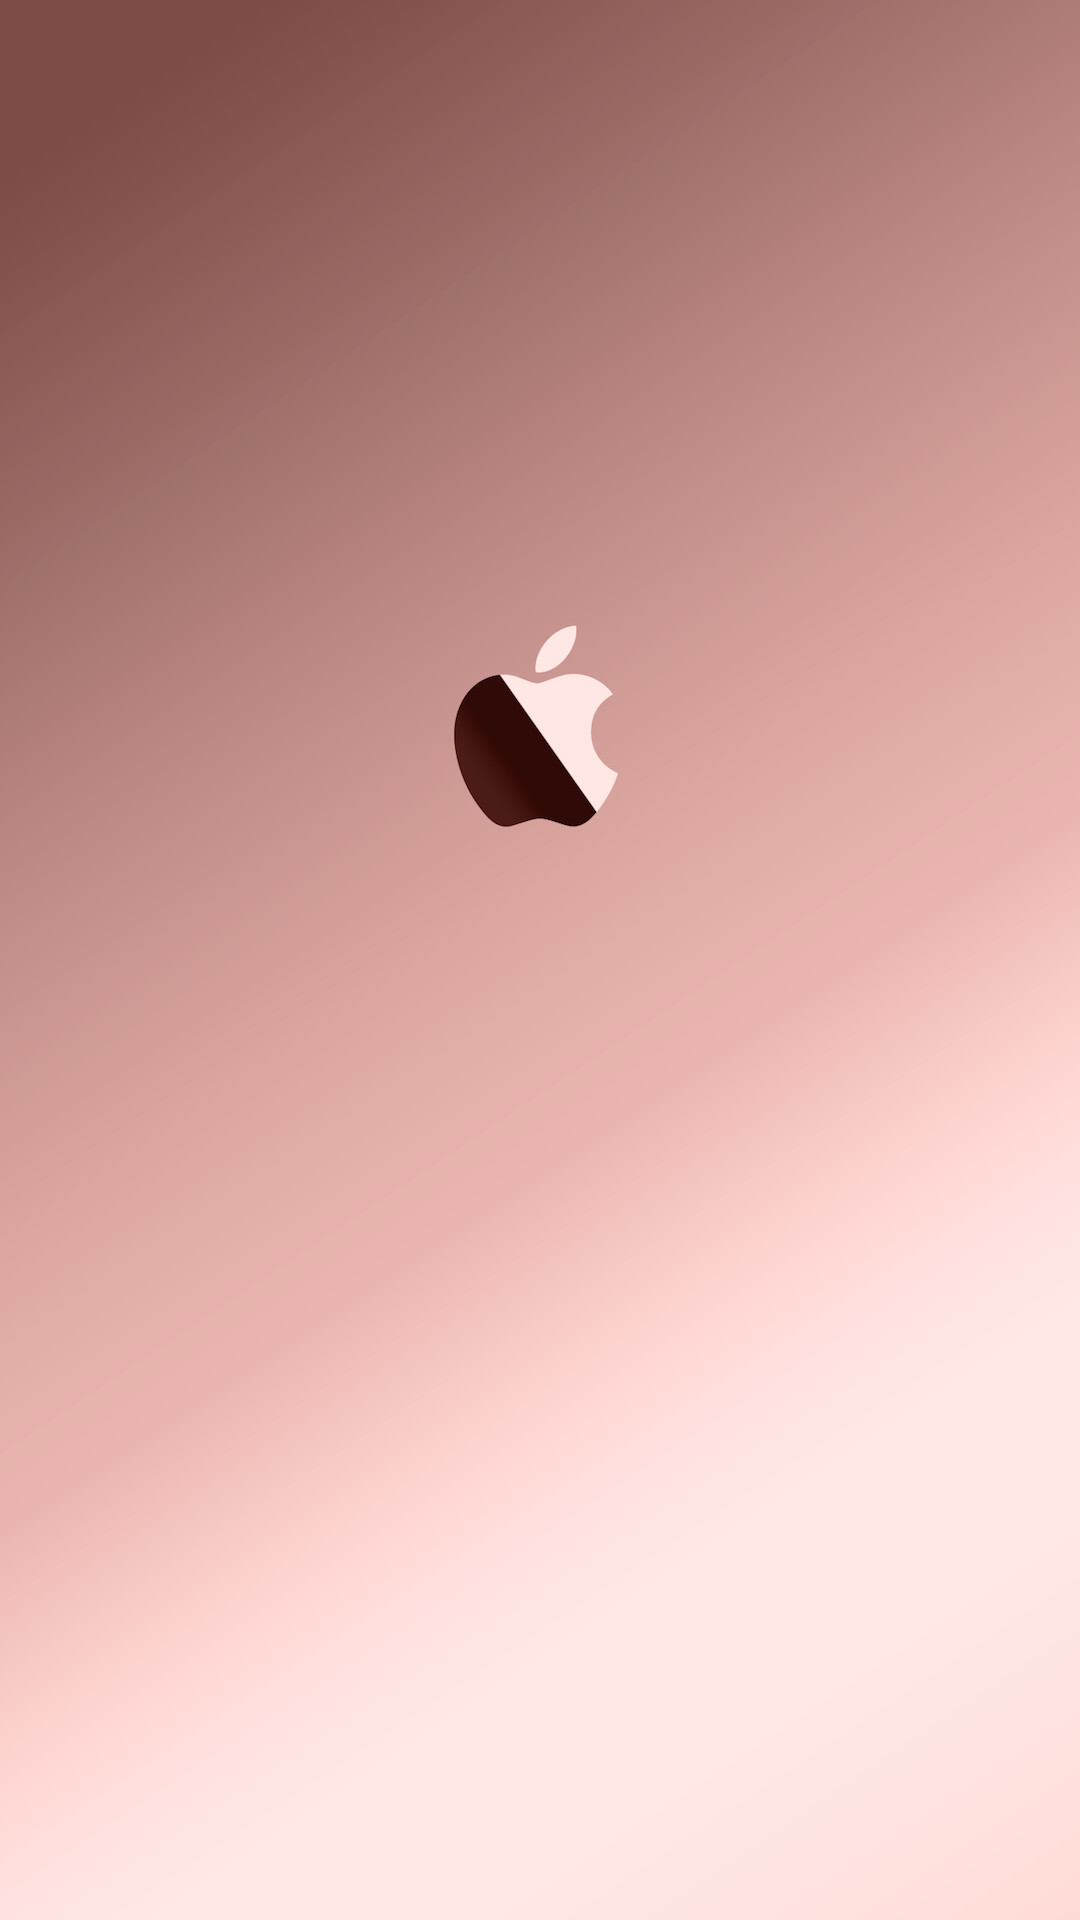 1080x1920 IPhone 8 Wallpaper Rose Gold 2018 Wallpapers